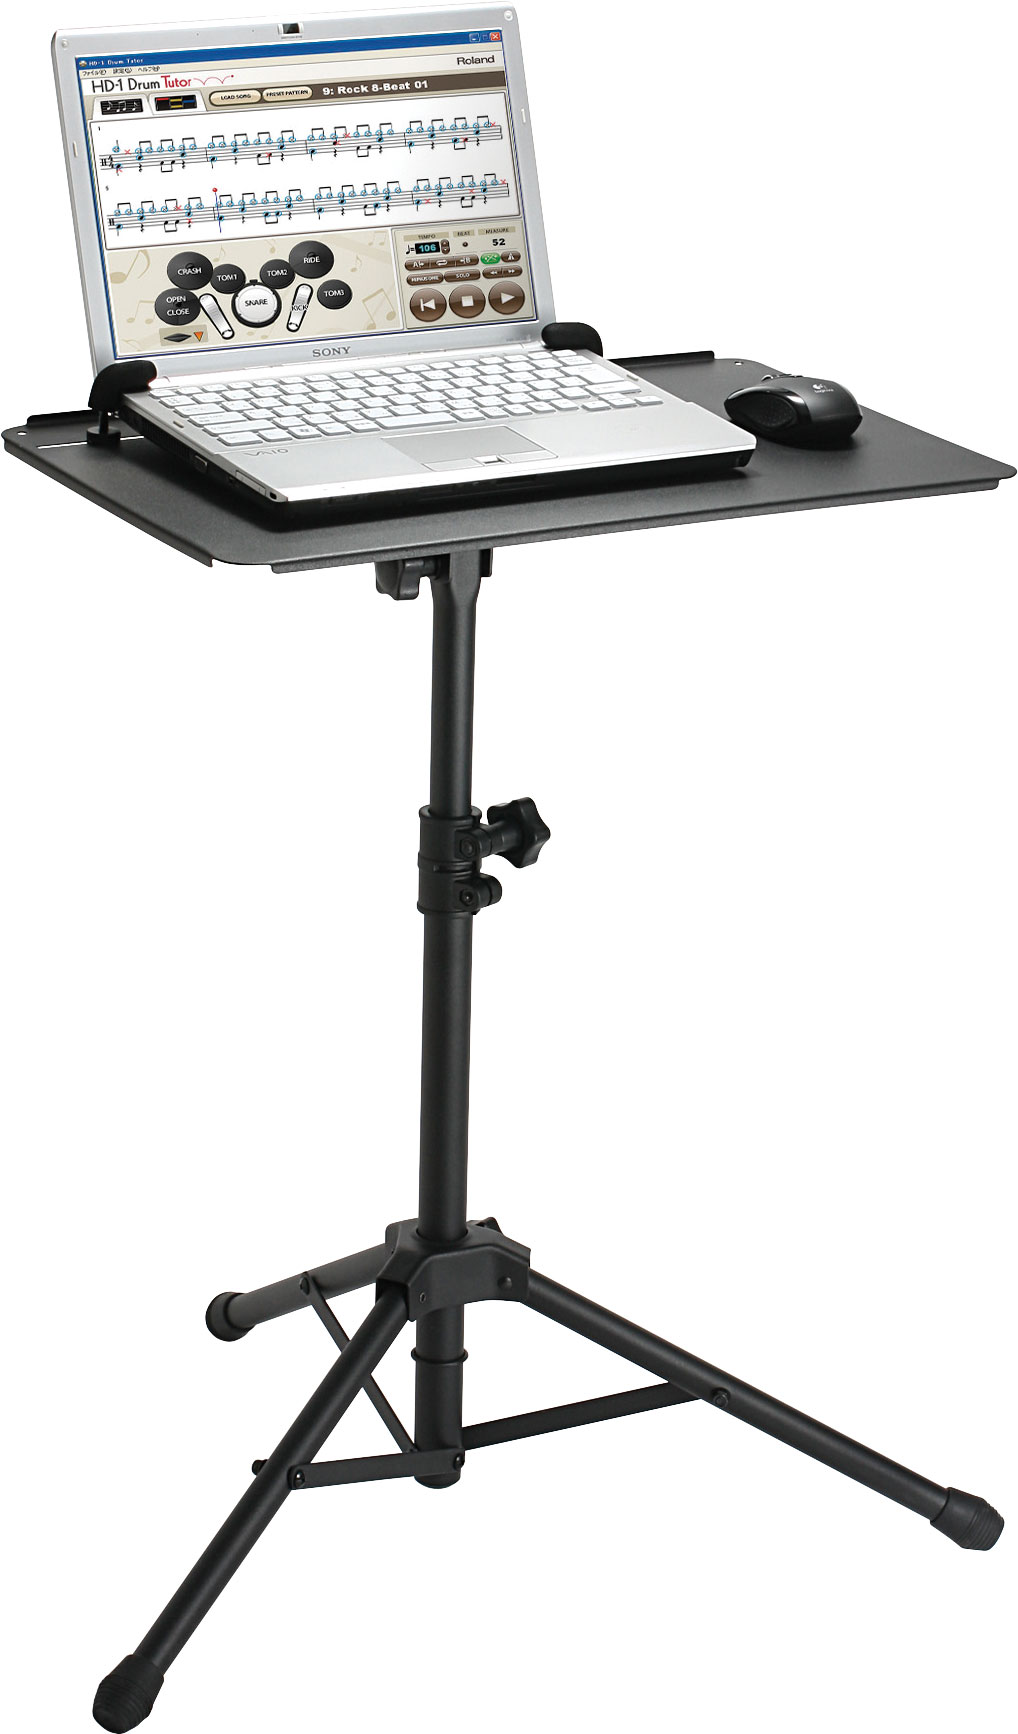 roland india ss pc1 support stand for pc. Black Bedroom Furniture Sets. Home Design Ideas